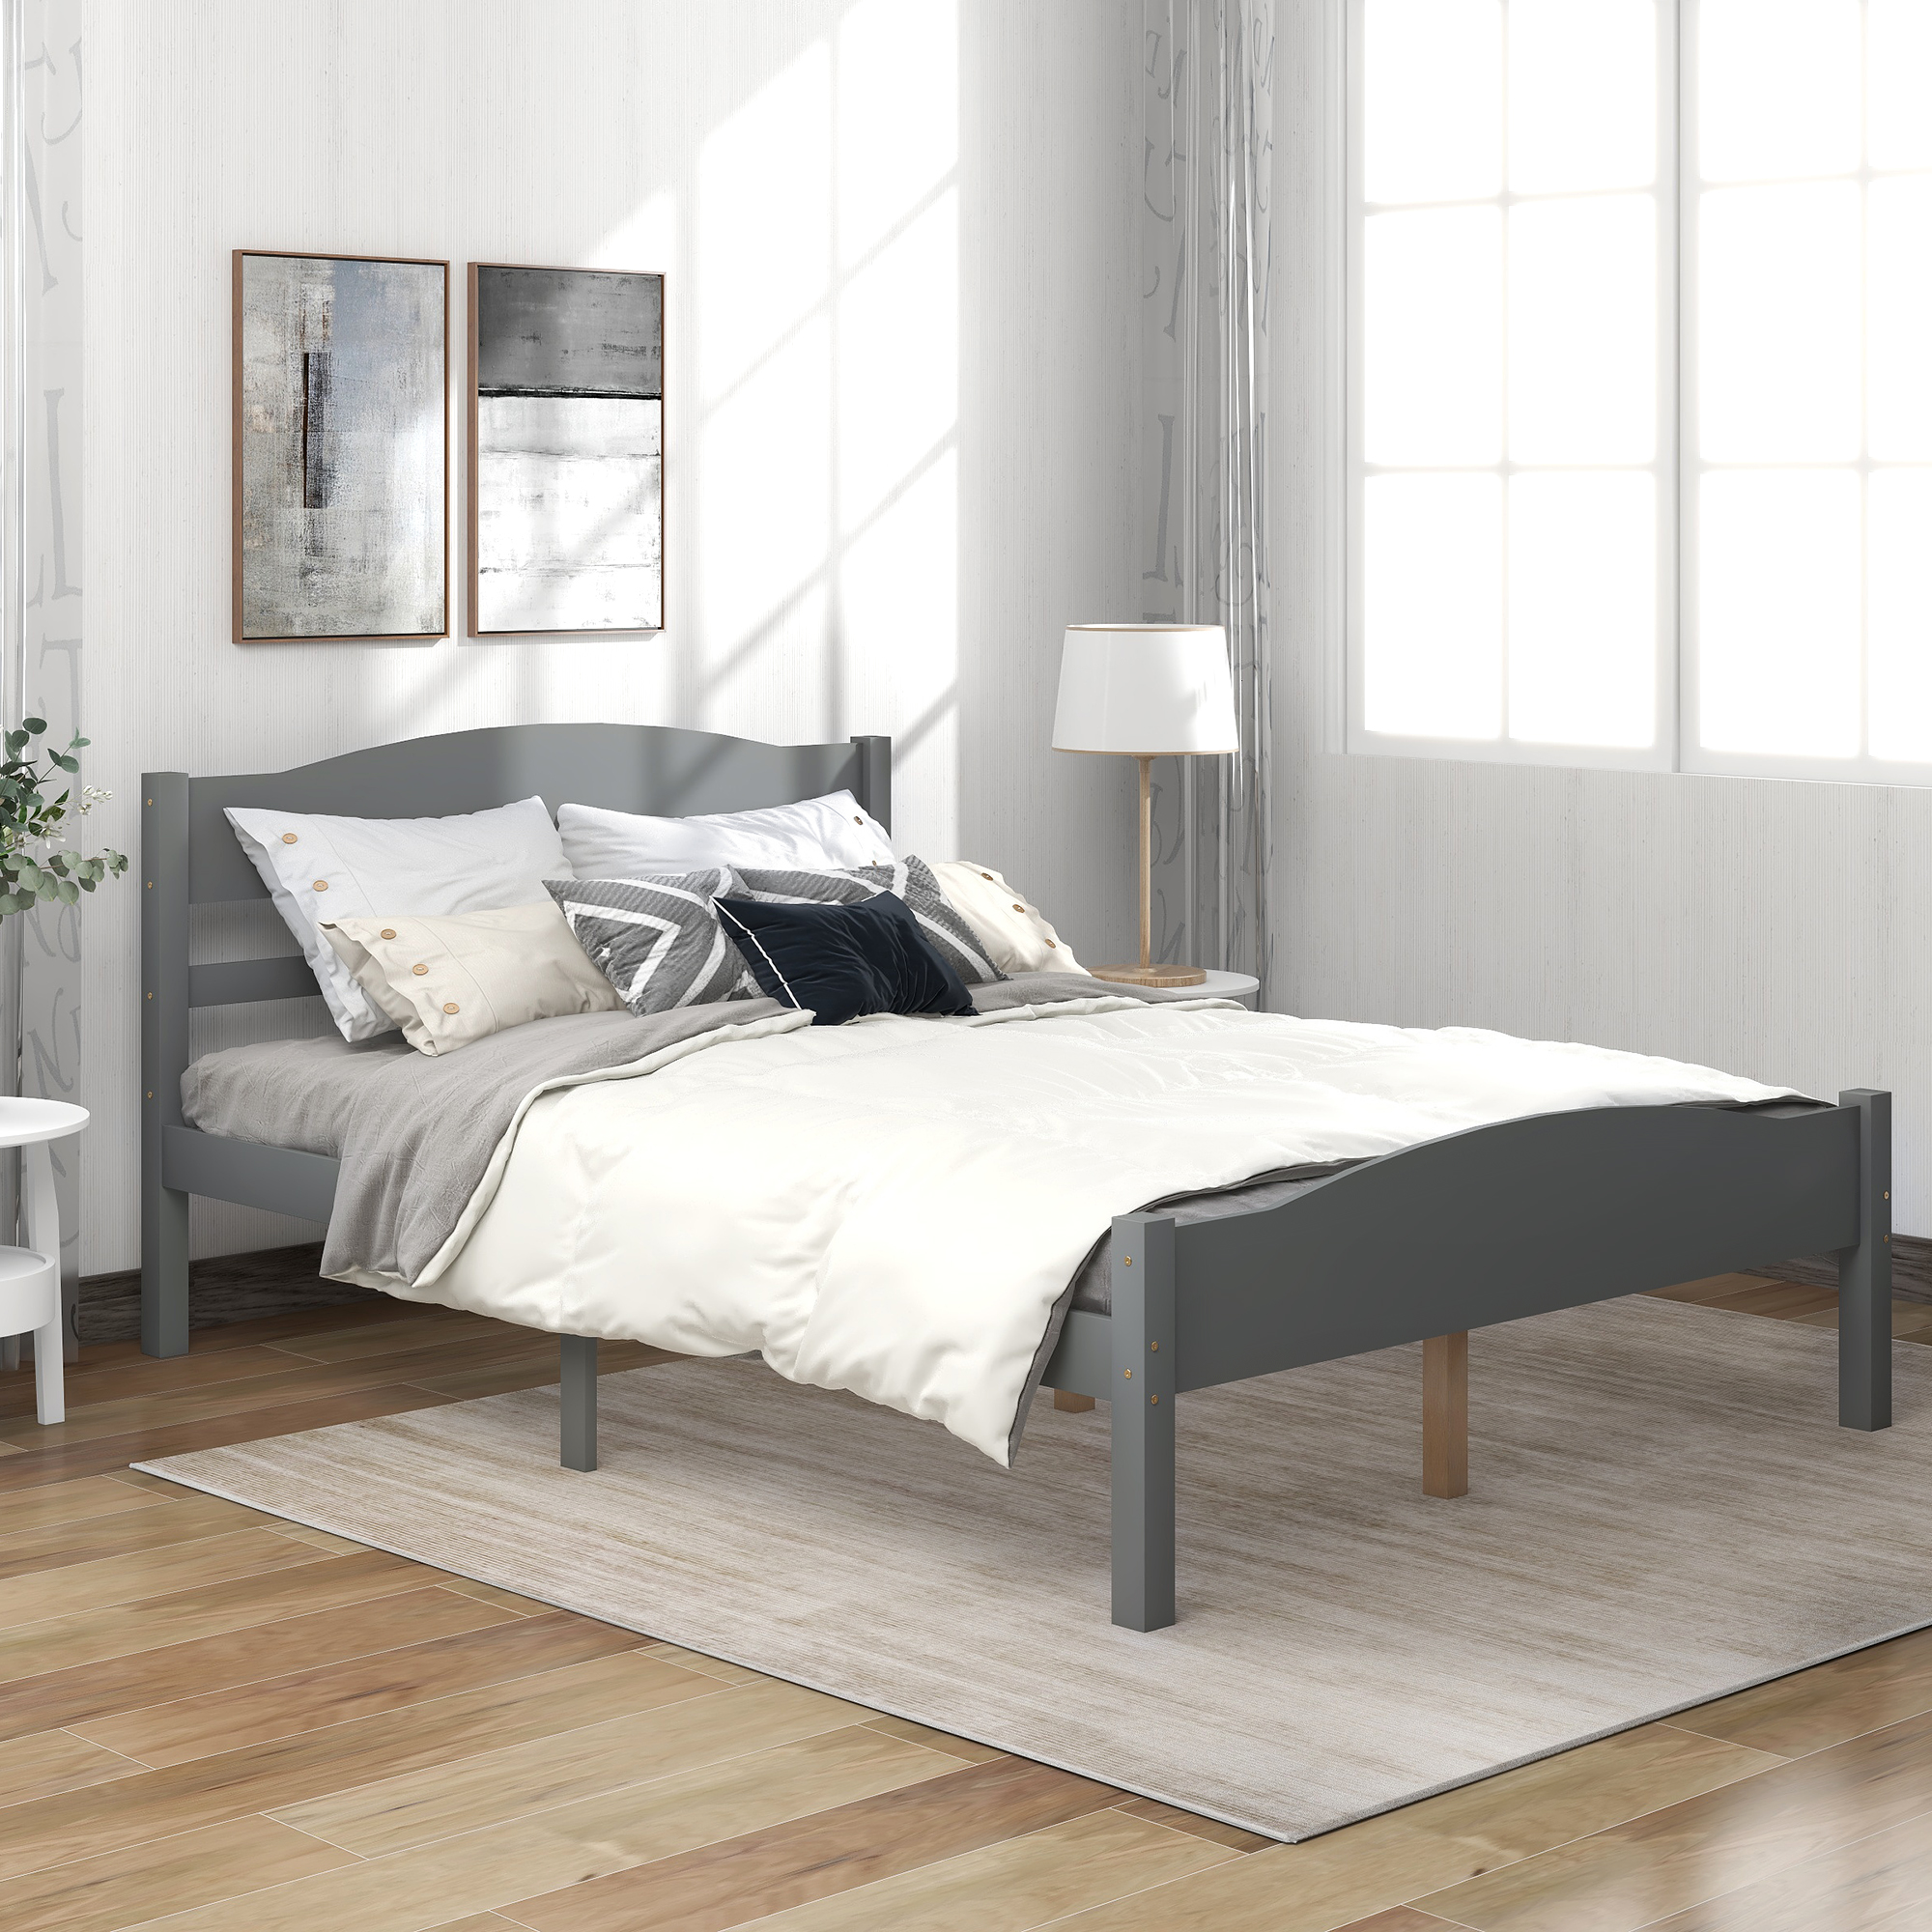 [US Direct] Platform Bed with Horizontal Strip Hollow Shape Headboard and Footboard and Center Support Feet, Twin size,Gray